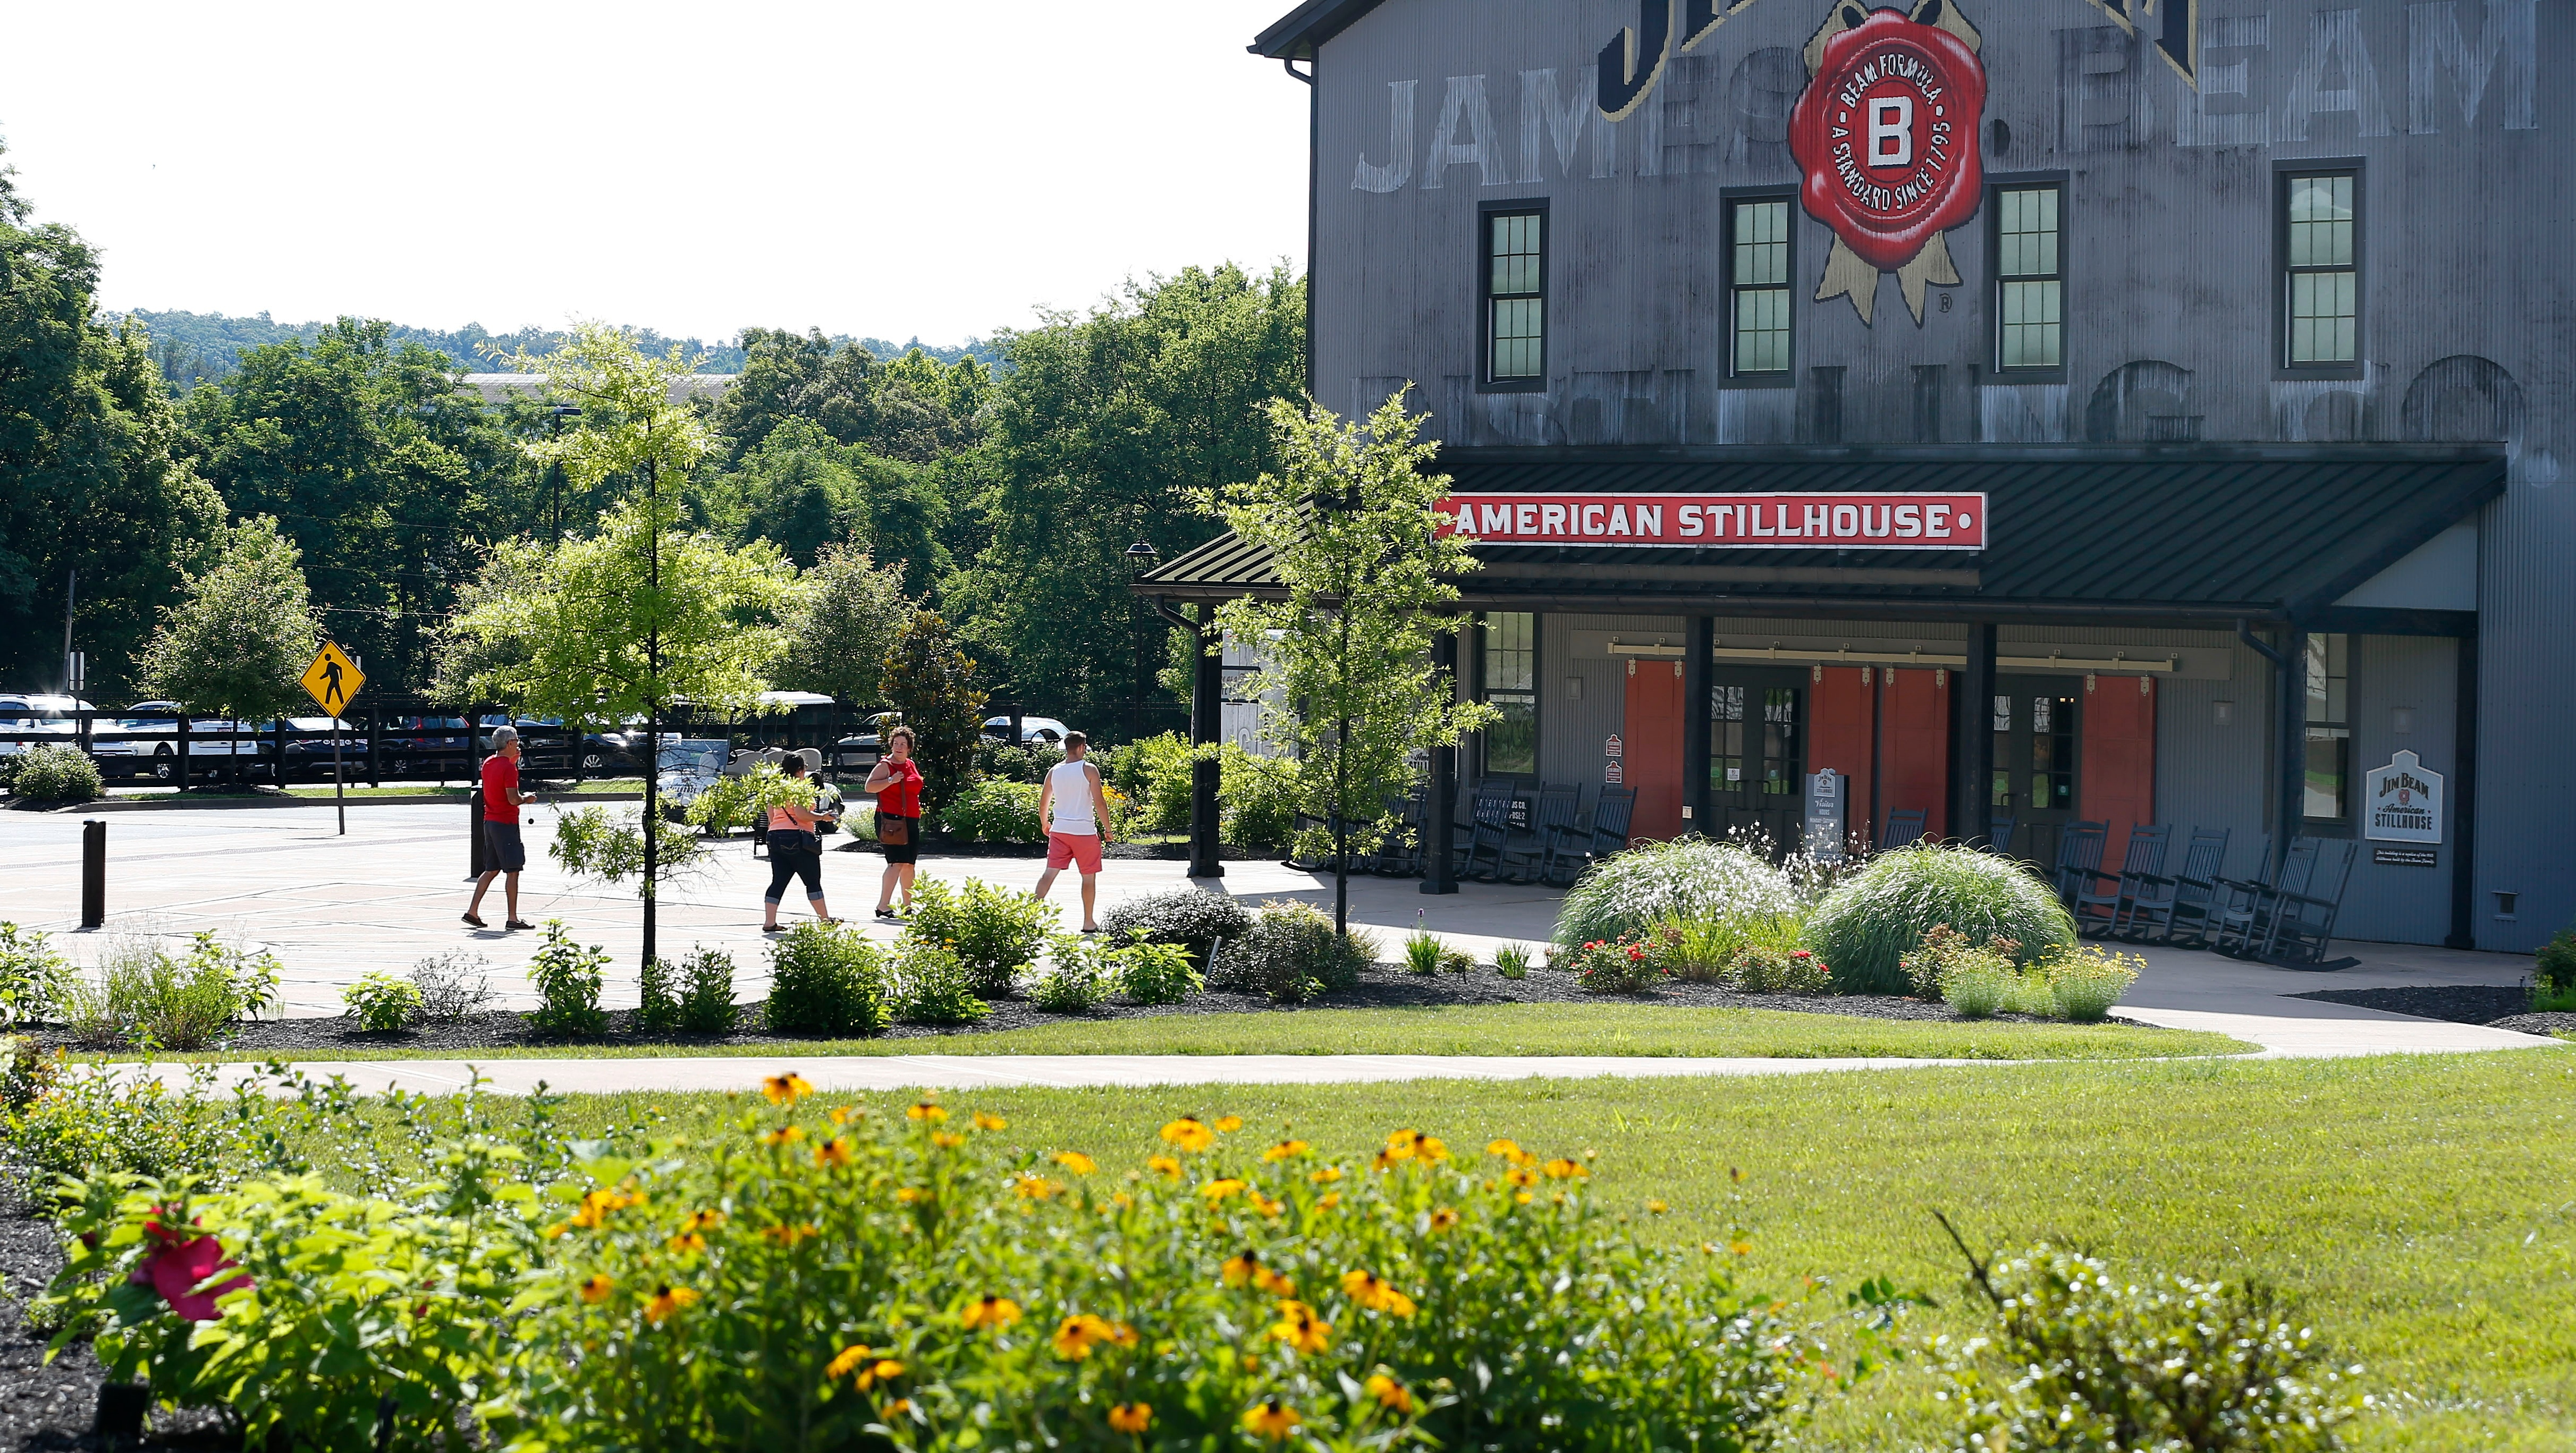 The visitor route for the Jim Beam Distillery public tours has to be immaculate.